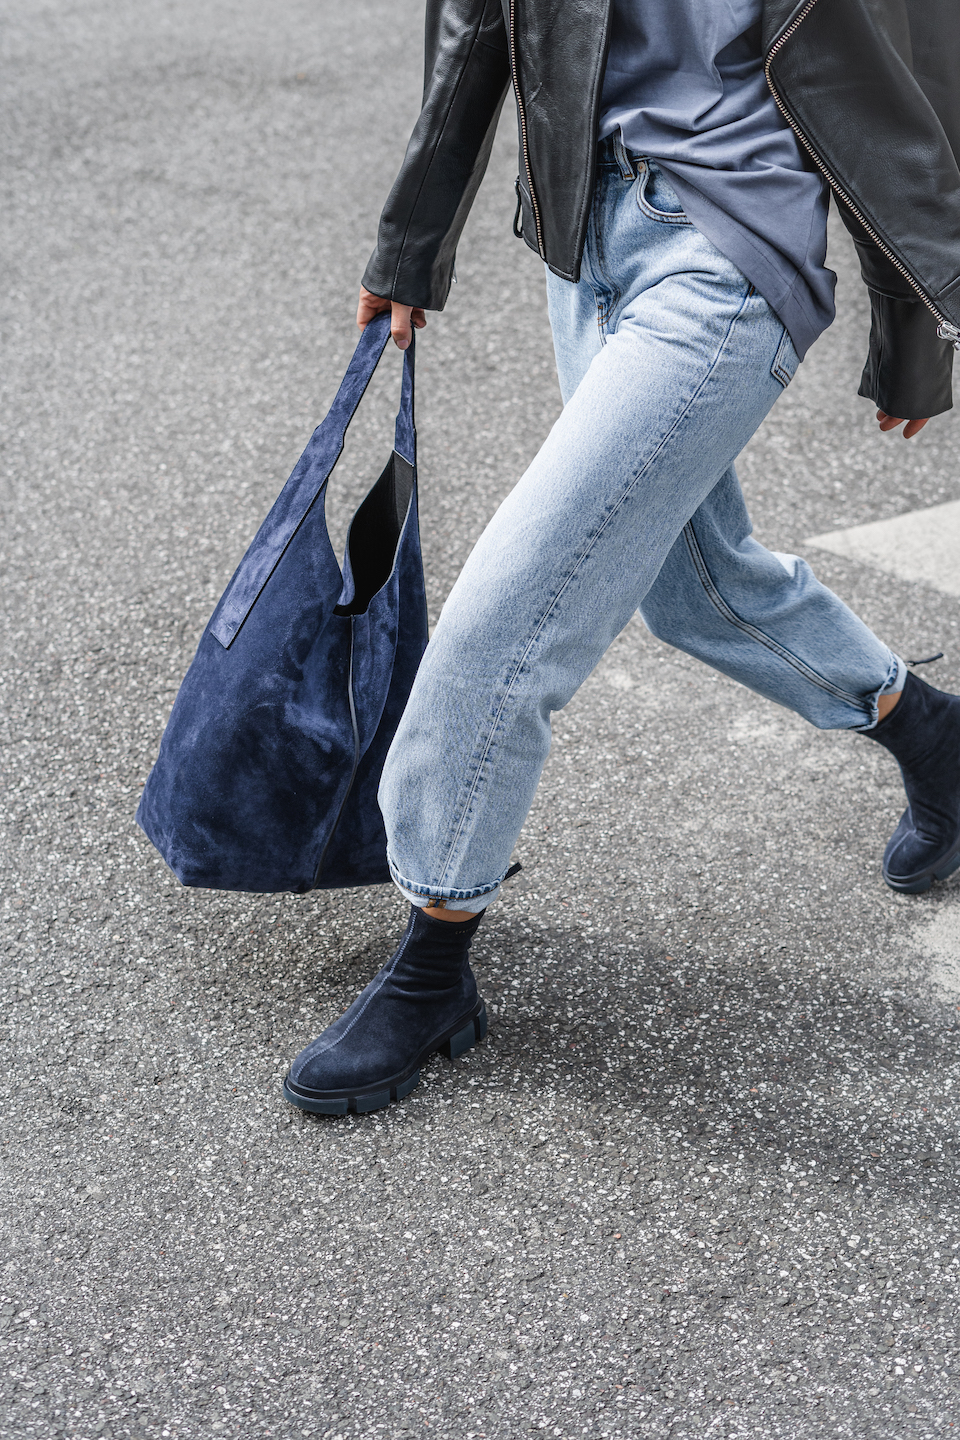 CPH Bag 1 crosta navy